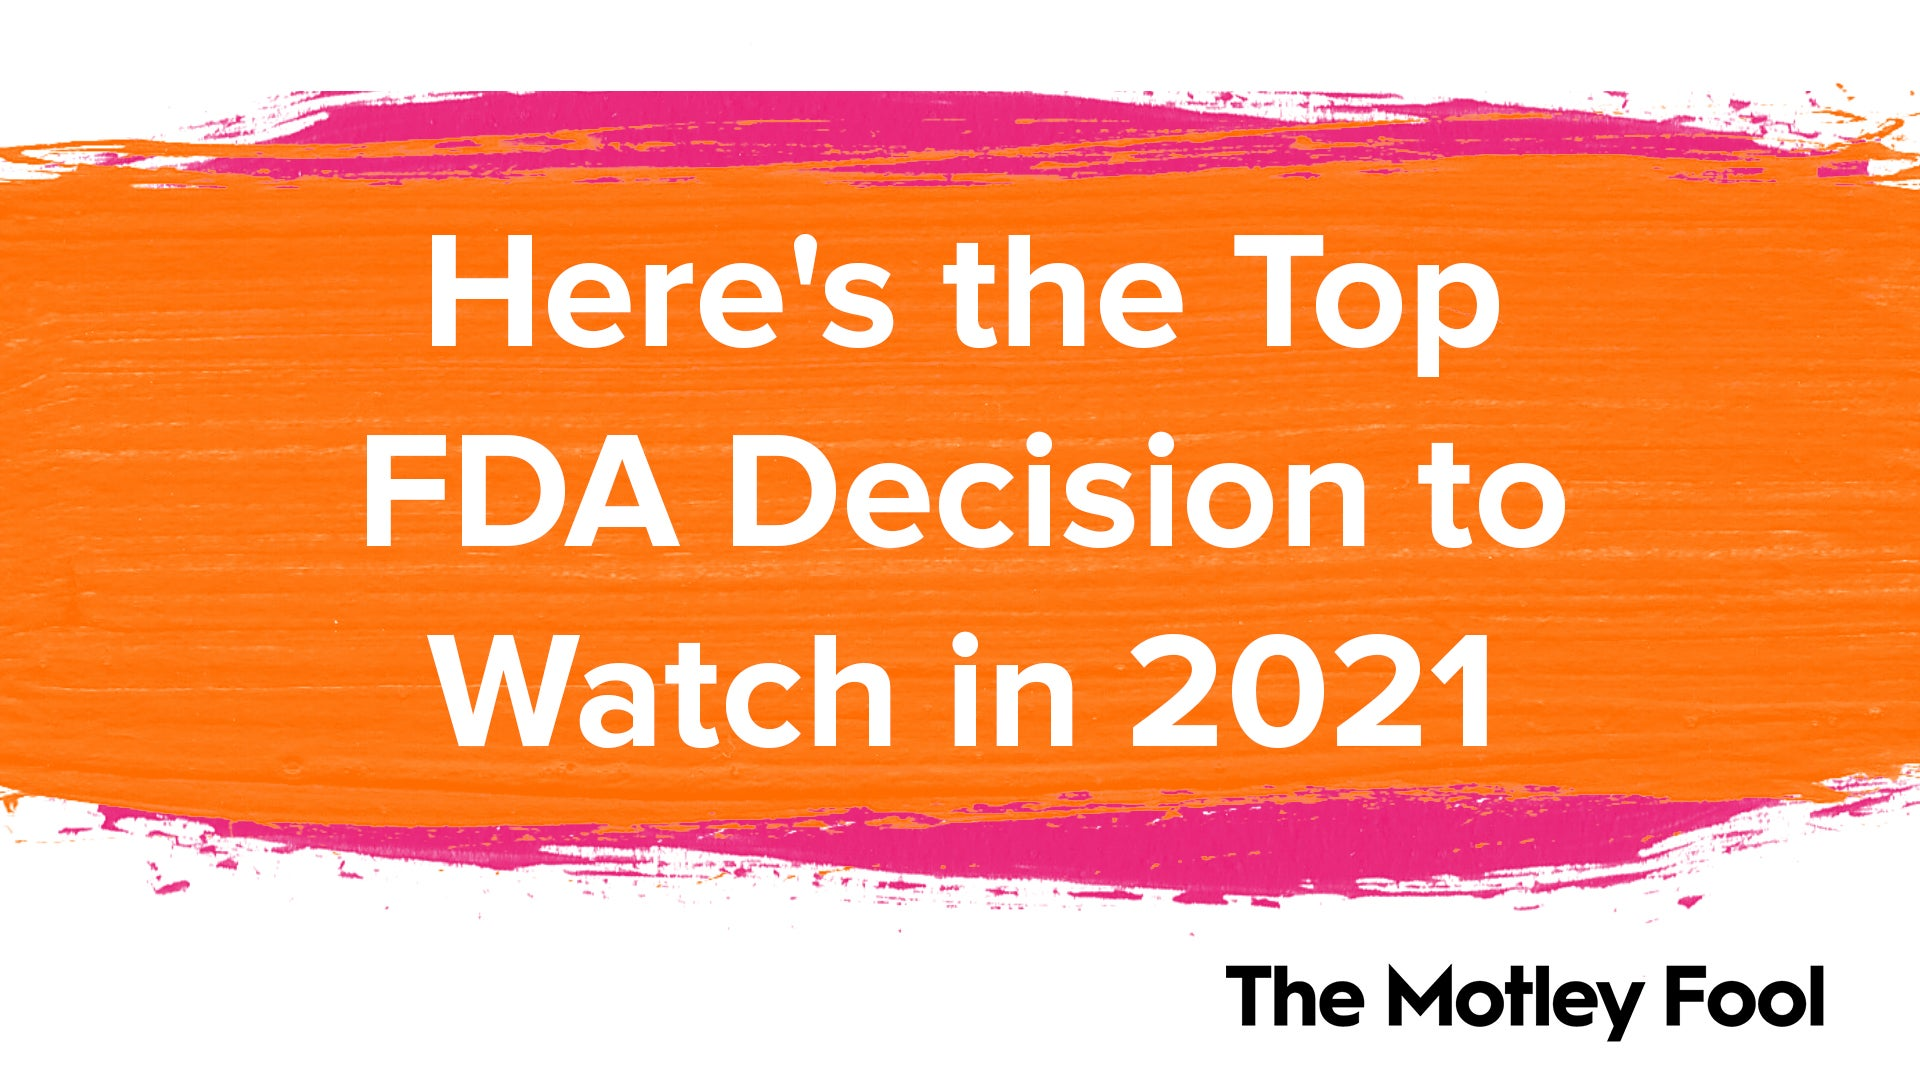 Here's the Top FDA Decision to Watch in 2021